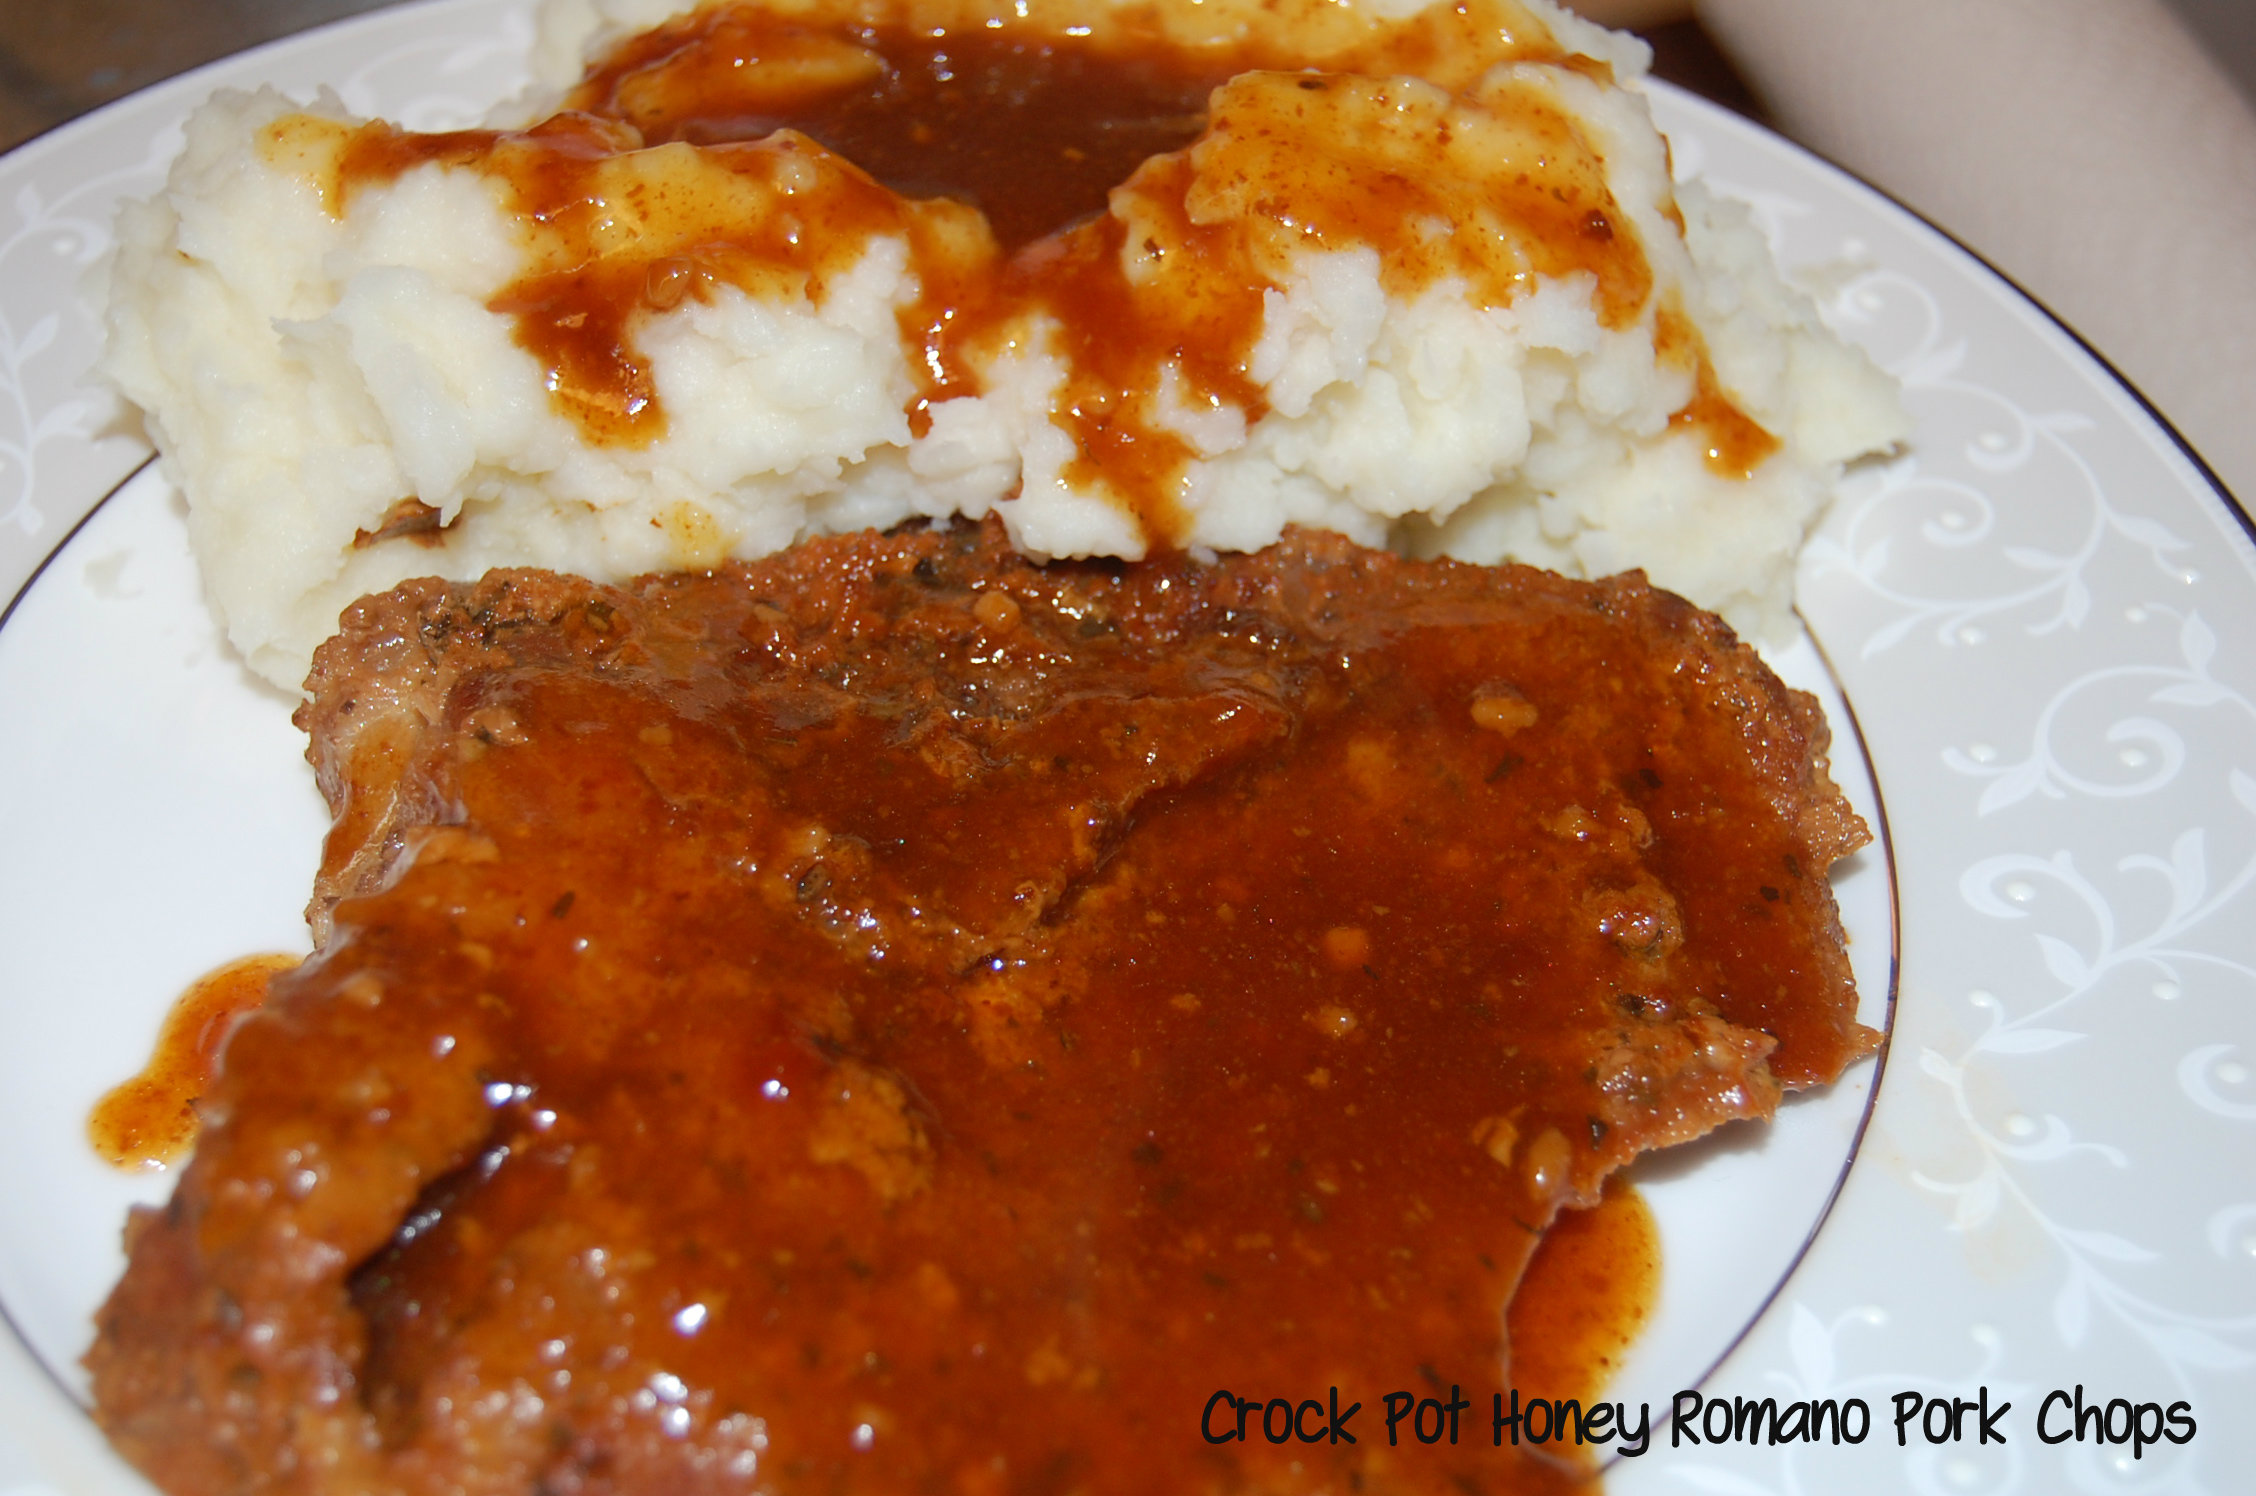 Crock Pot Honey Romano Pork Chops